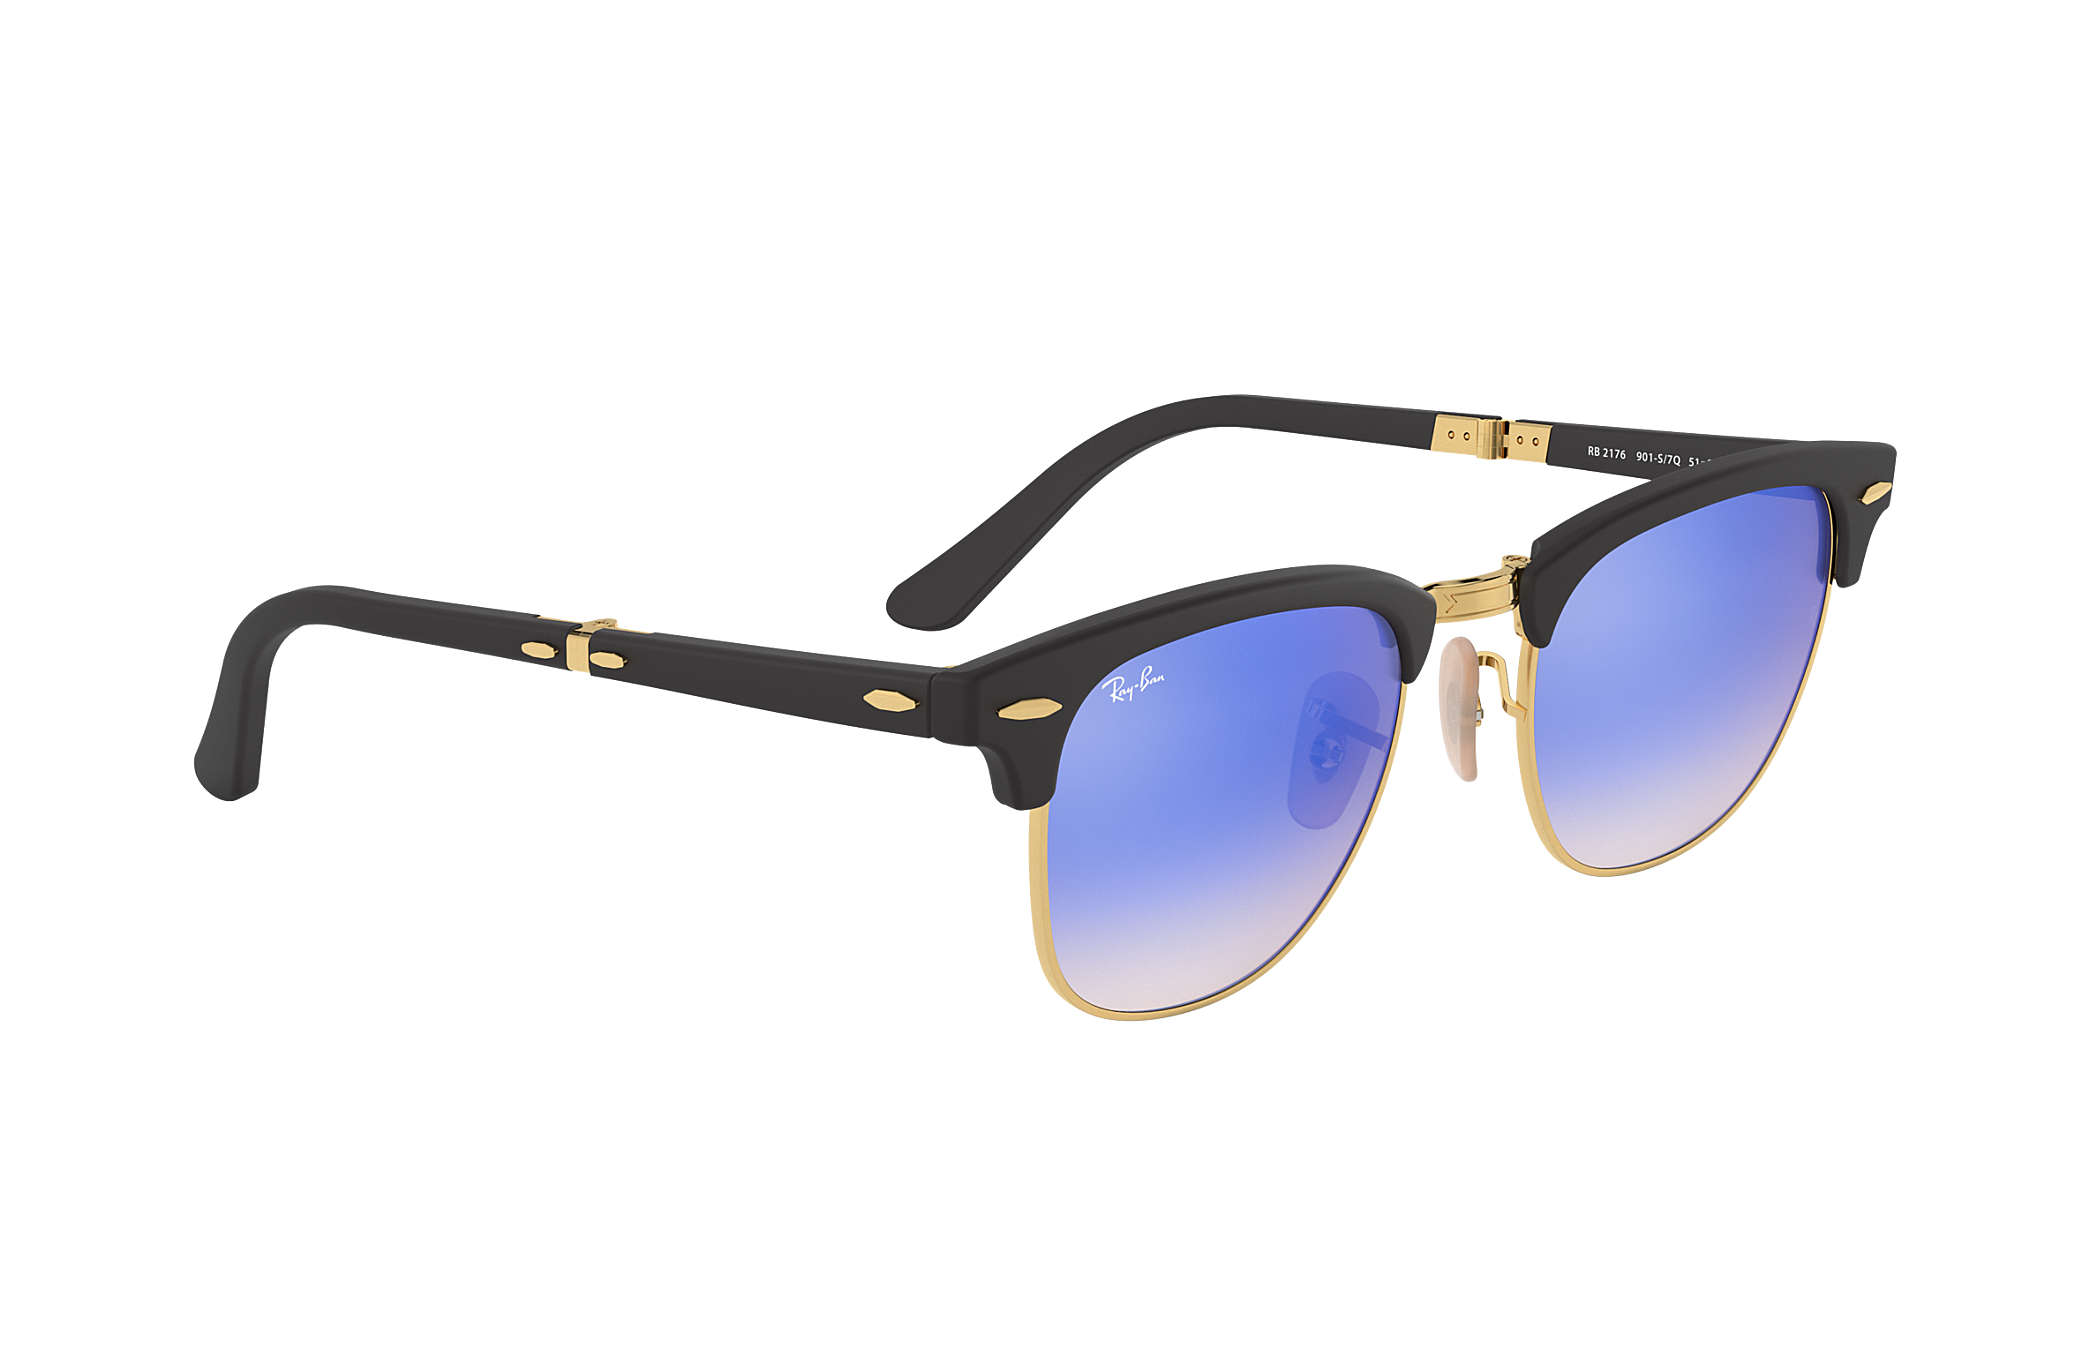 afce61d165 ... Ray-Ban 0RB2176-CLUBMASTER FOLDING FLASH LENSES GRADIENT Black  Gold  SUN ...